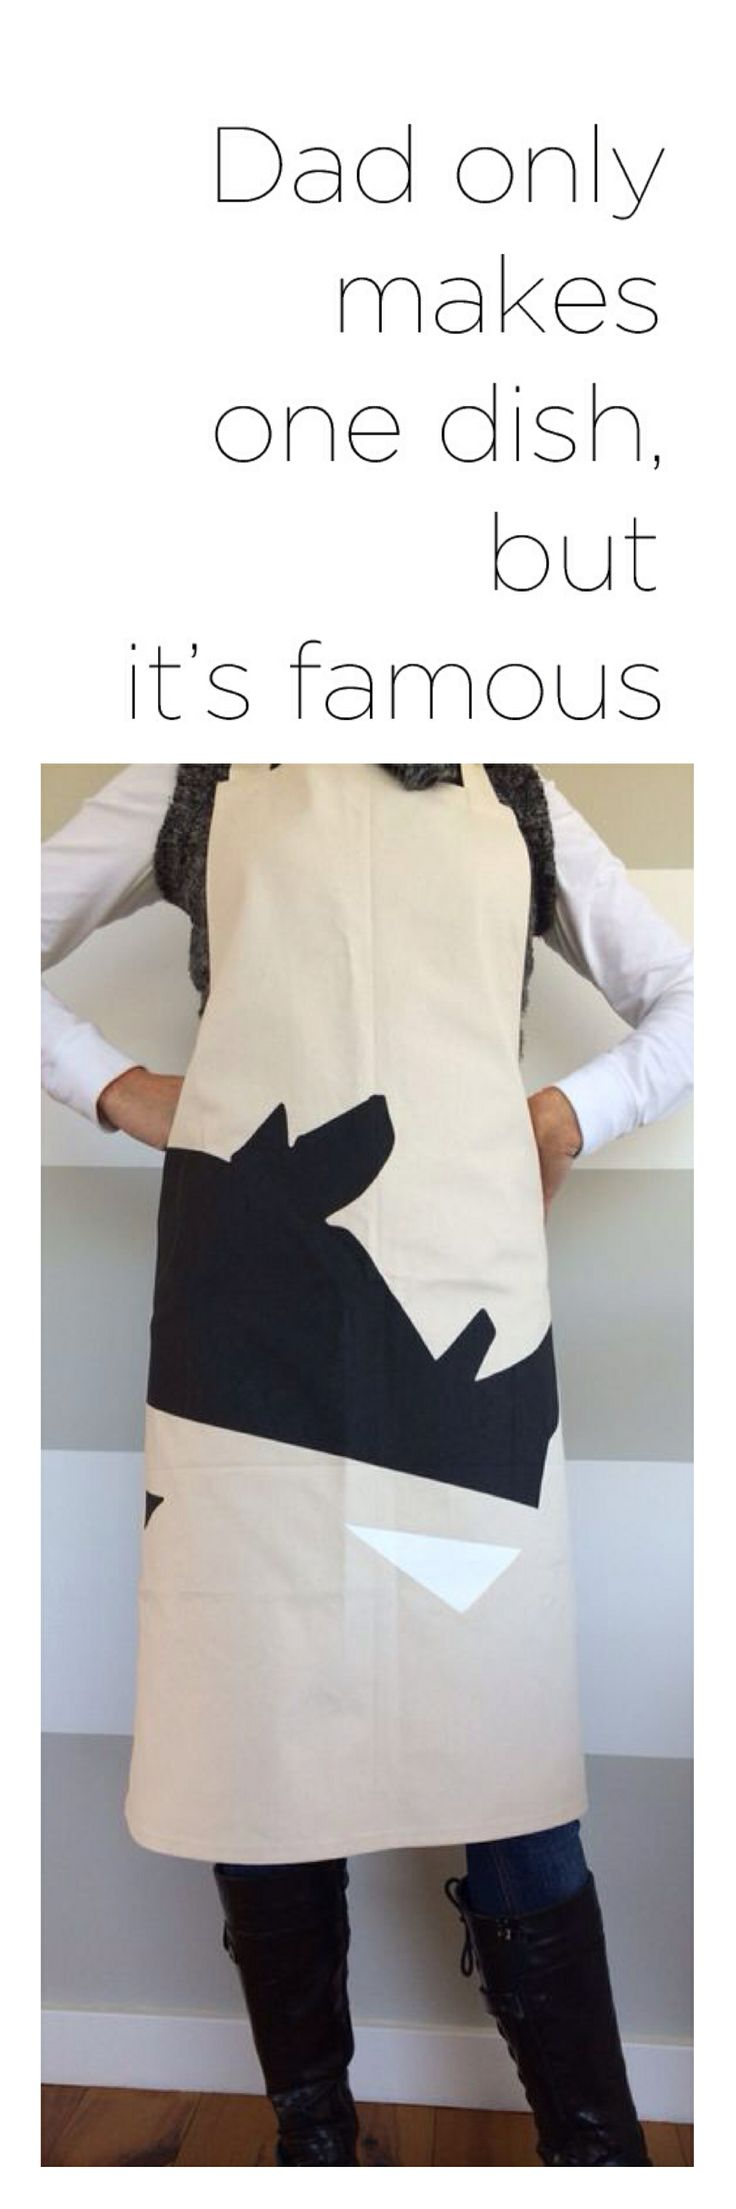 Fathers Day Aprons available @ eCo, 196 Main Rd, Walmer, Port Elizabeth, South Africa - SuzieQu Bespoke Rhino fabric